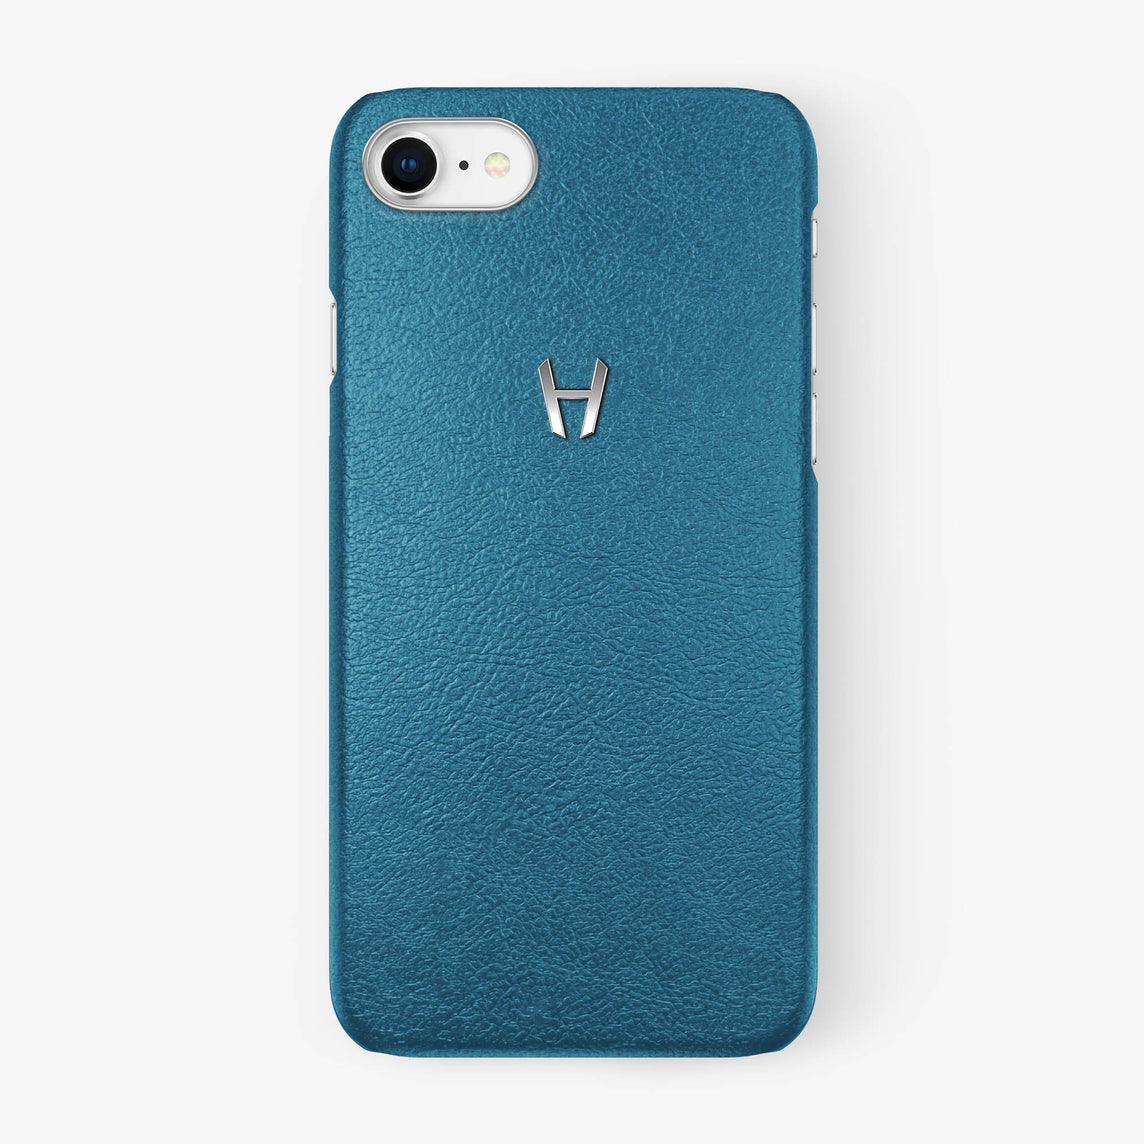 Teal Calfskin iPhone Case for iPhone 7/8 finishing stainless steel - Hadoro Luxury Cases